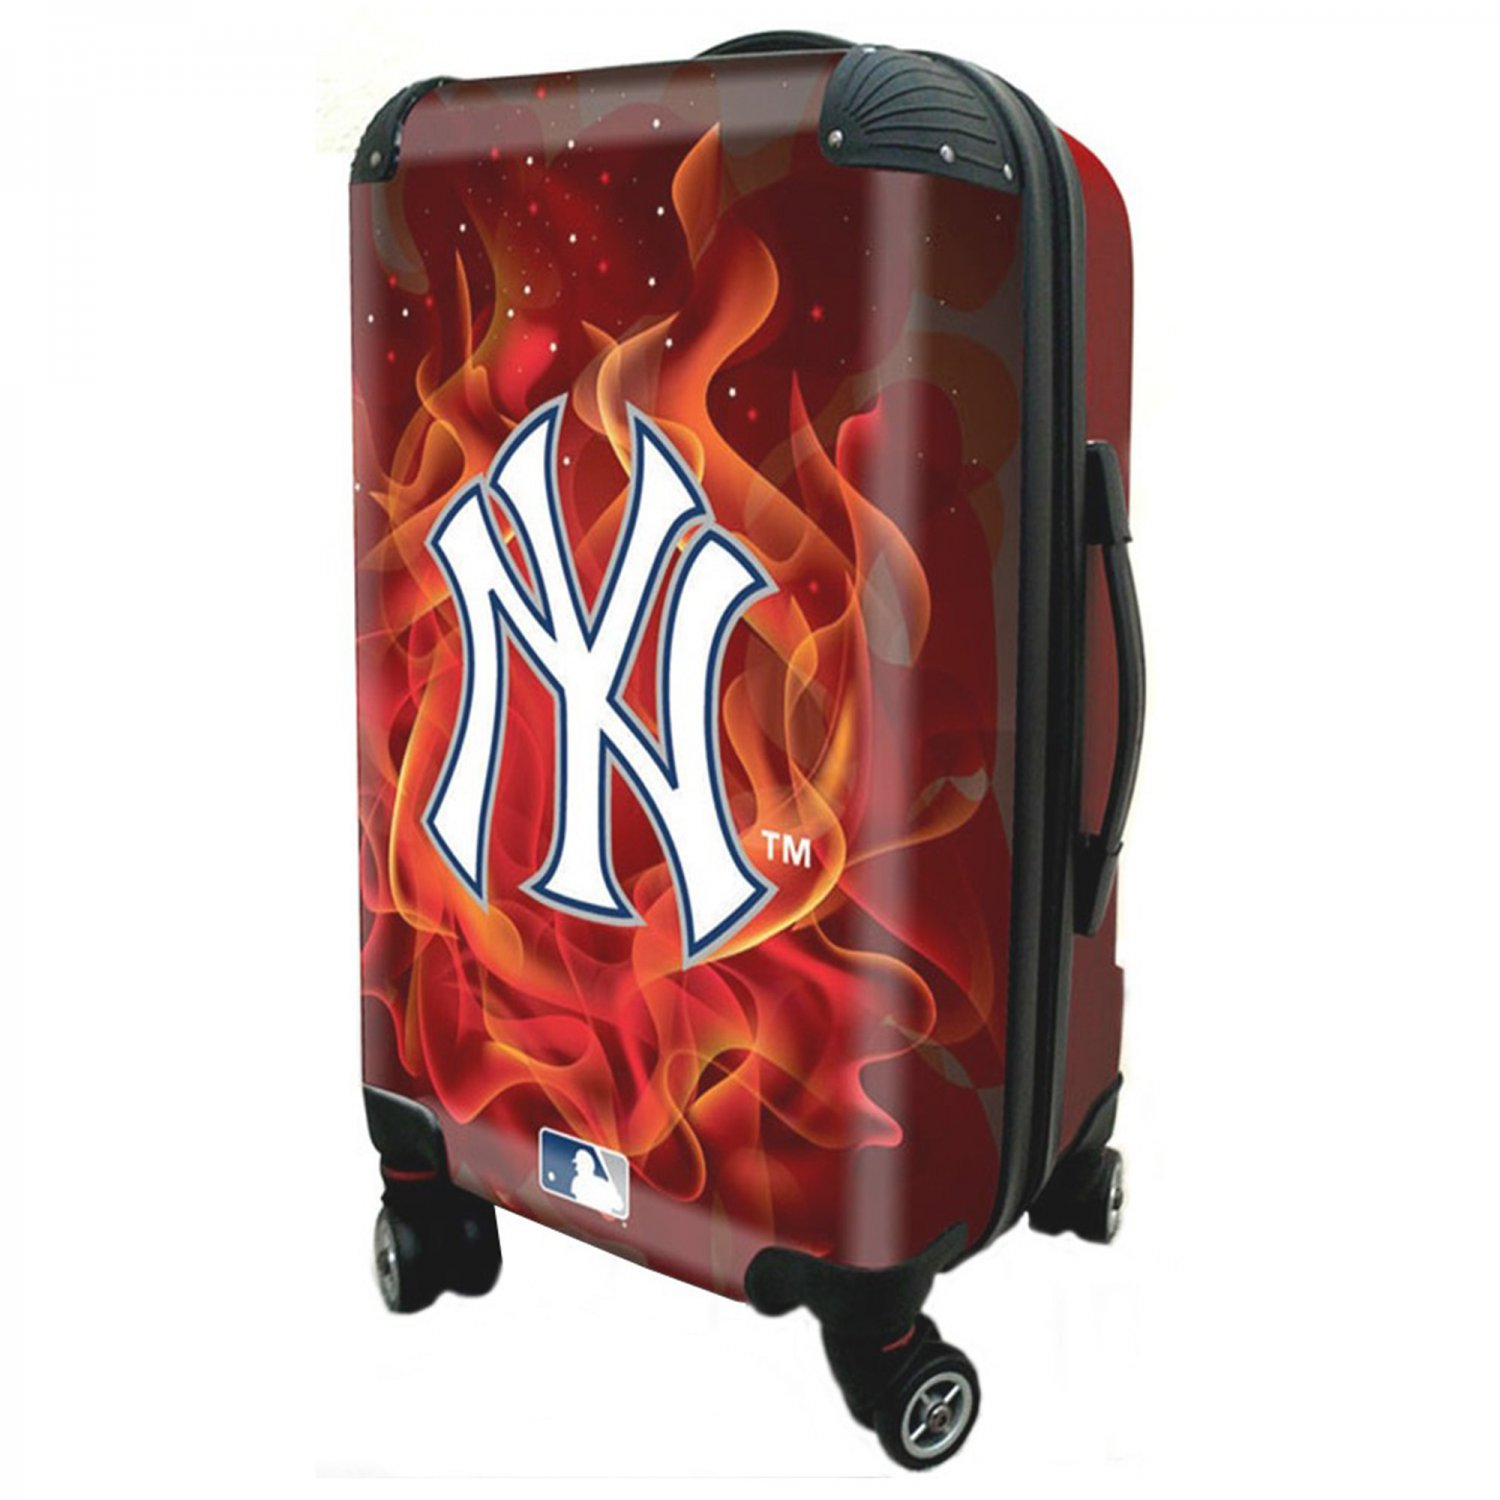 "New York Yankees, 21"" Clear Poly Carry-On Luggage by Kaybull #NYY16"